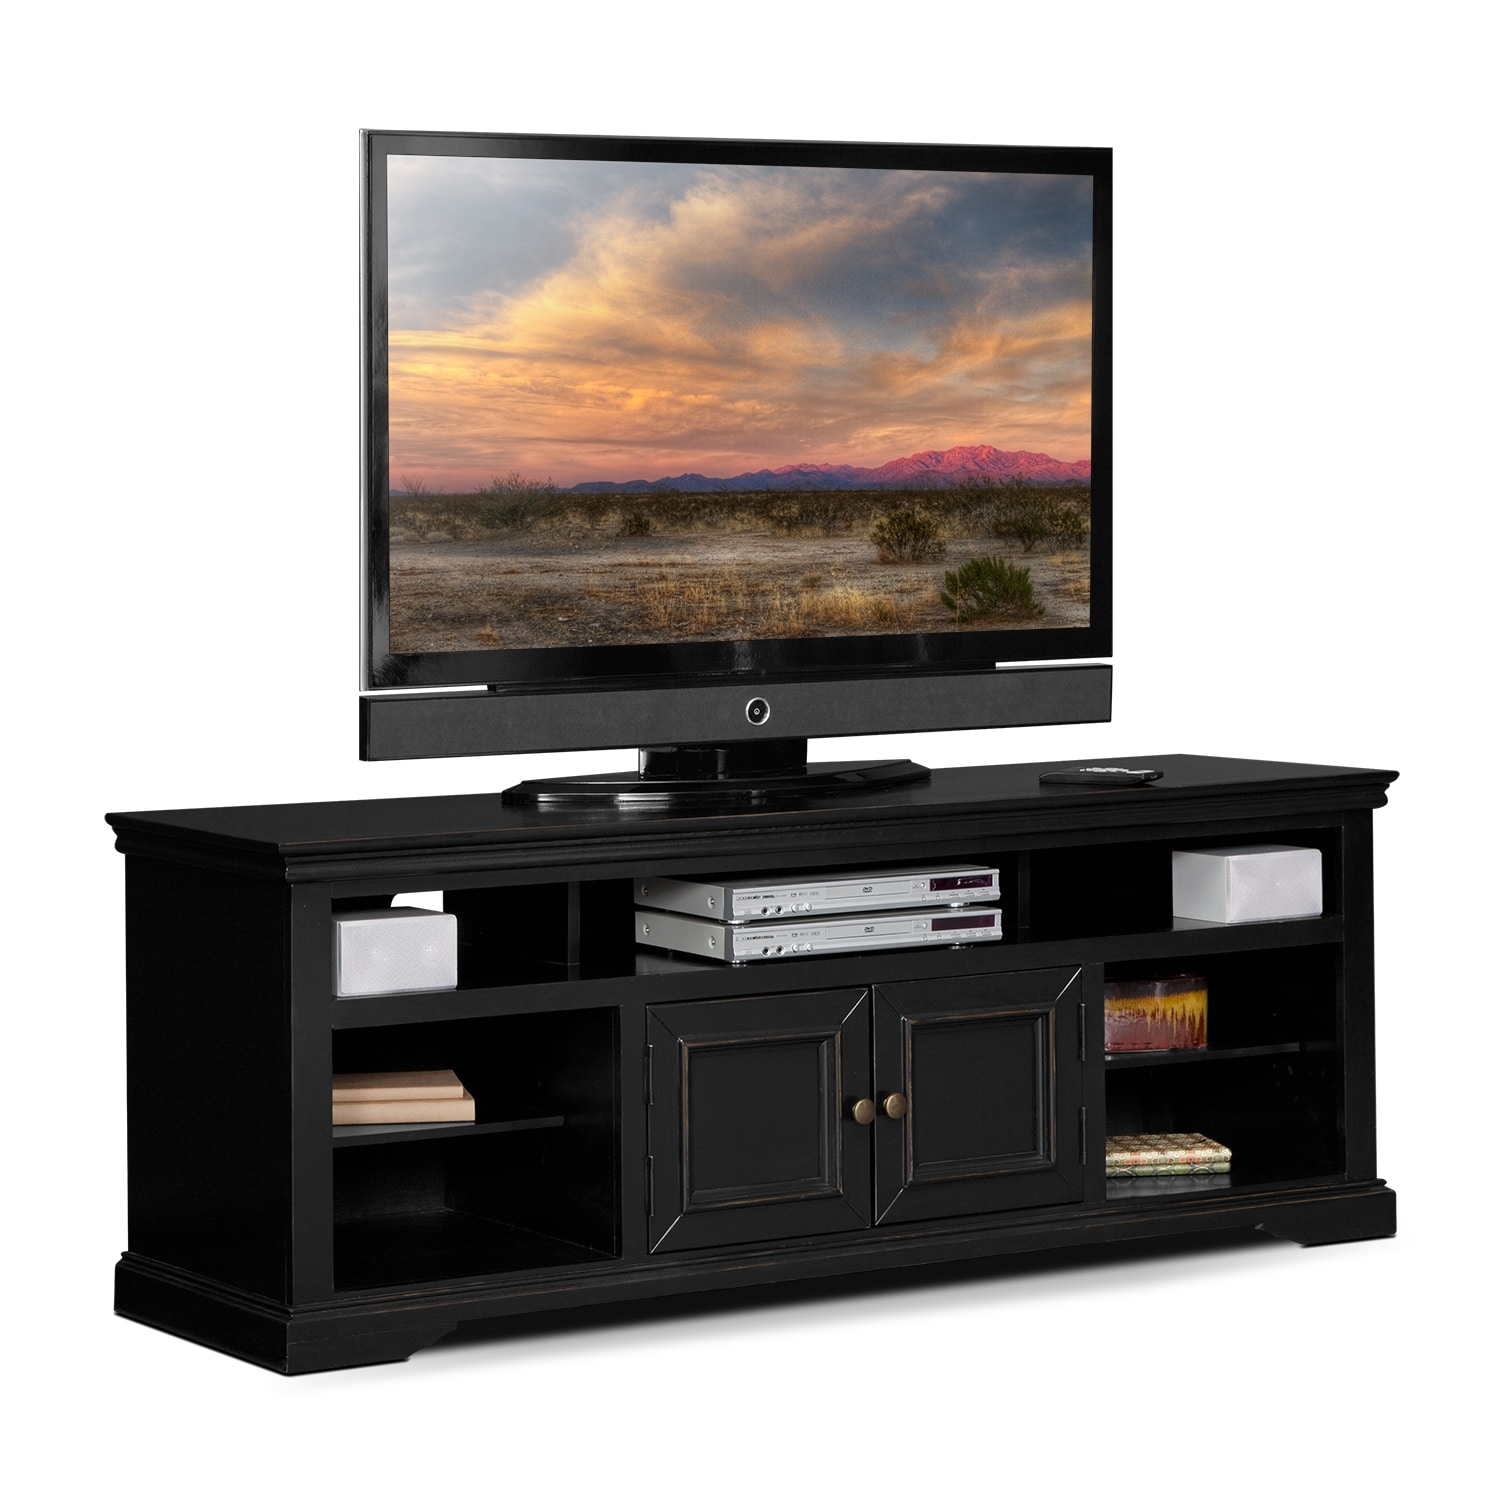 Jenson quot tv stand black value city furniture